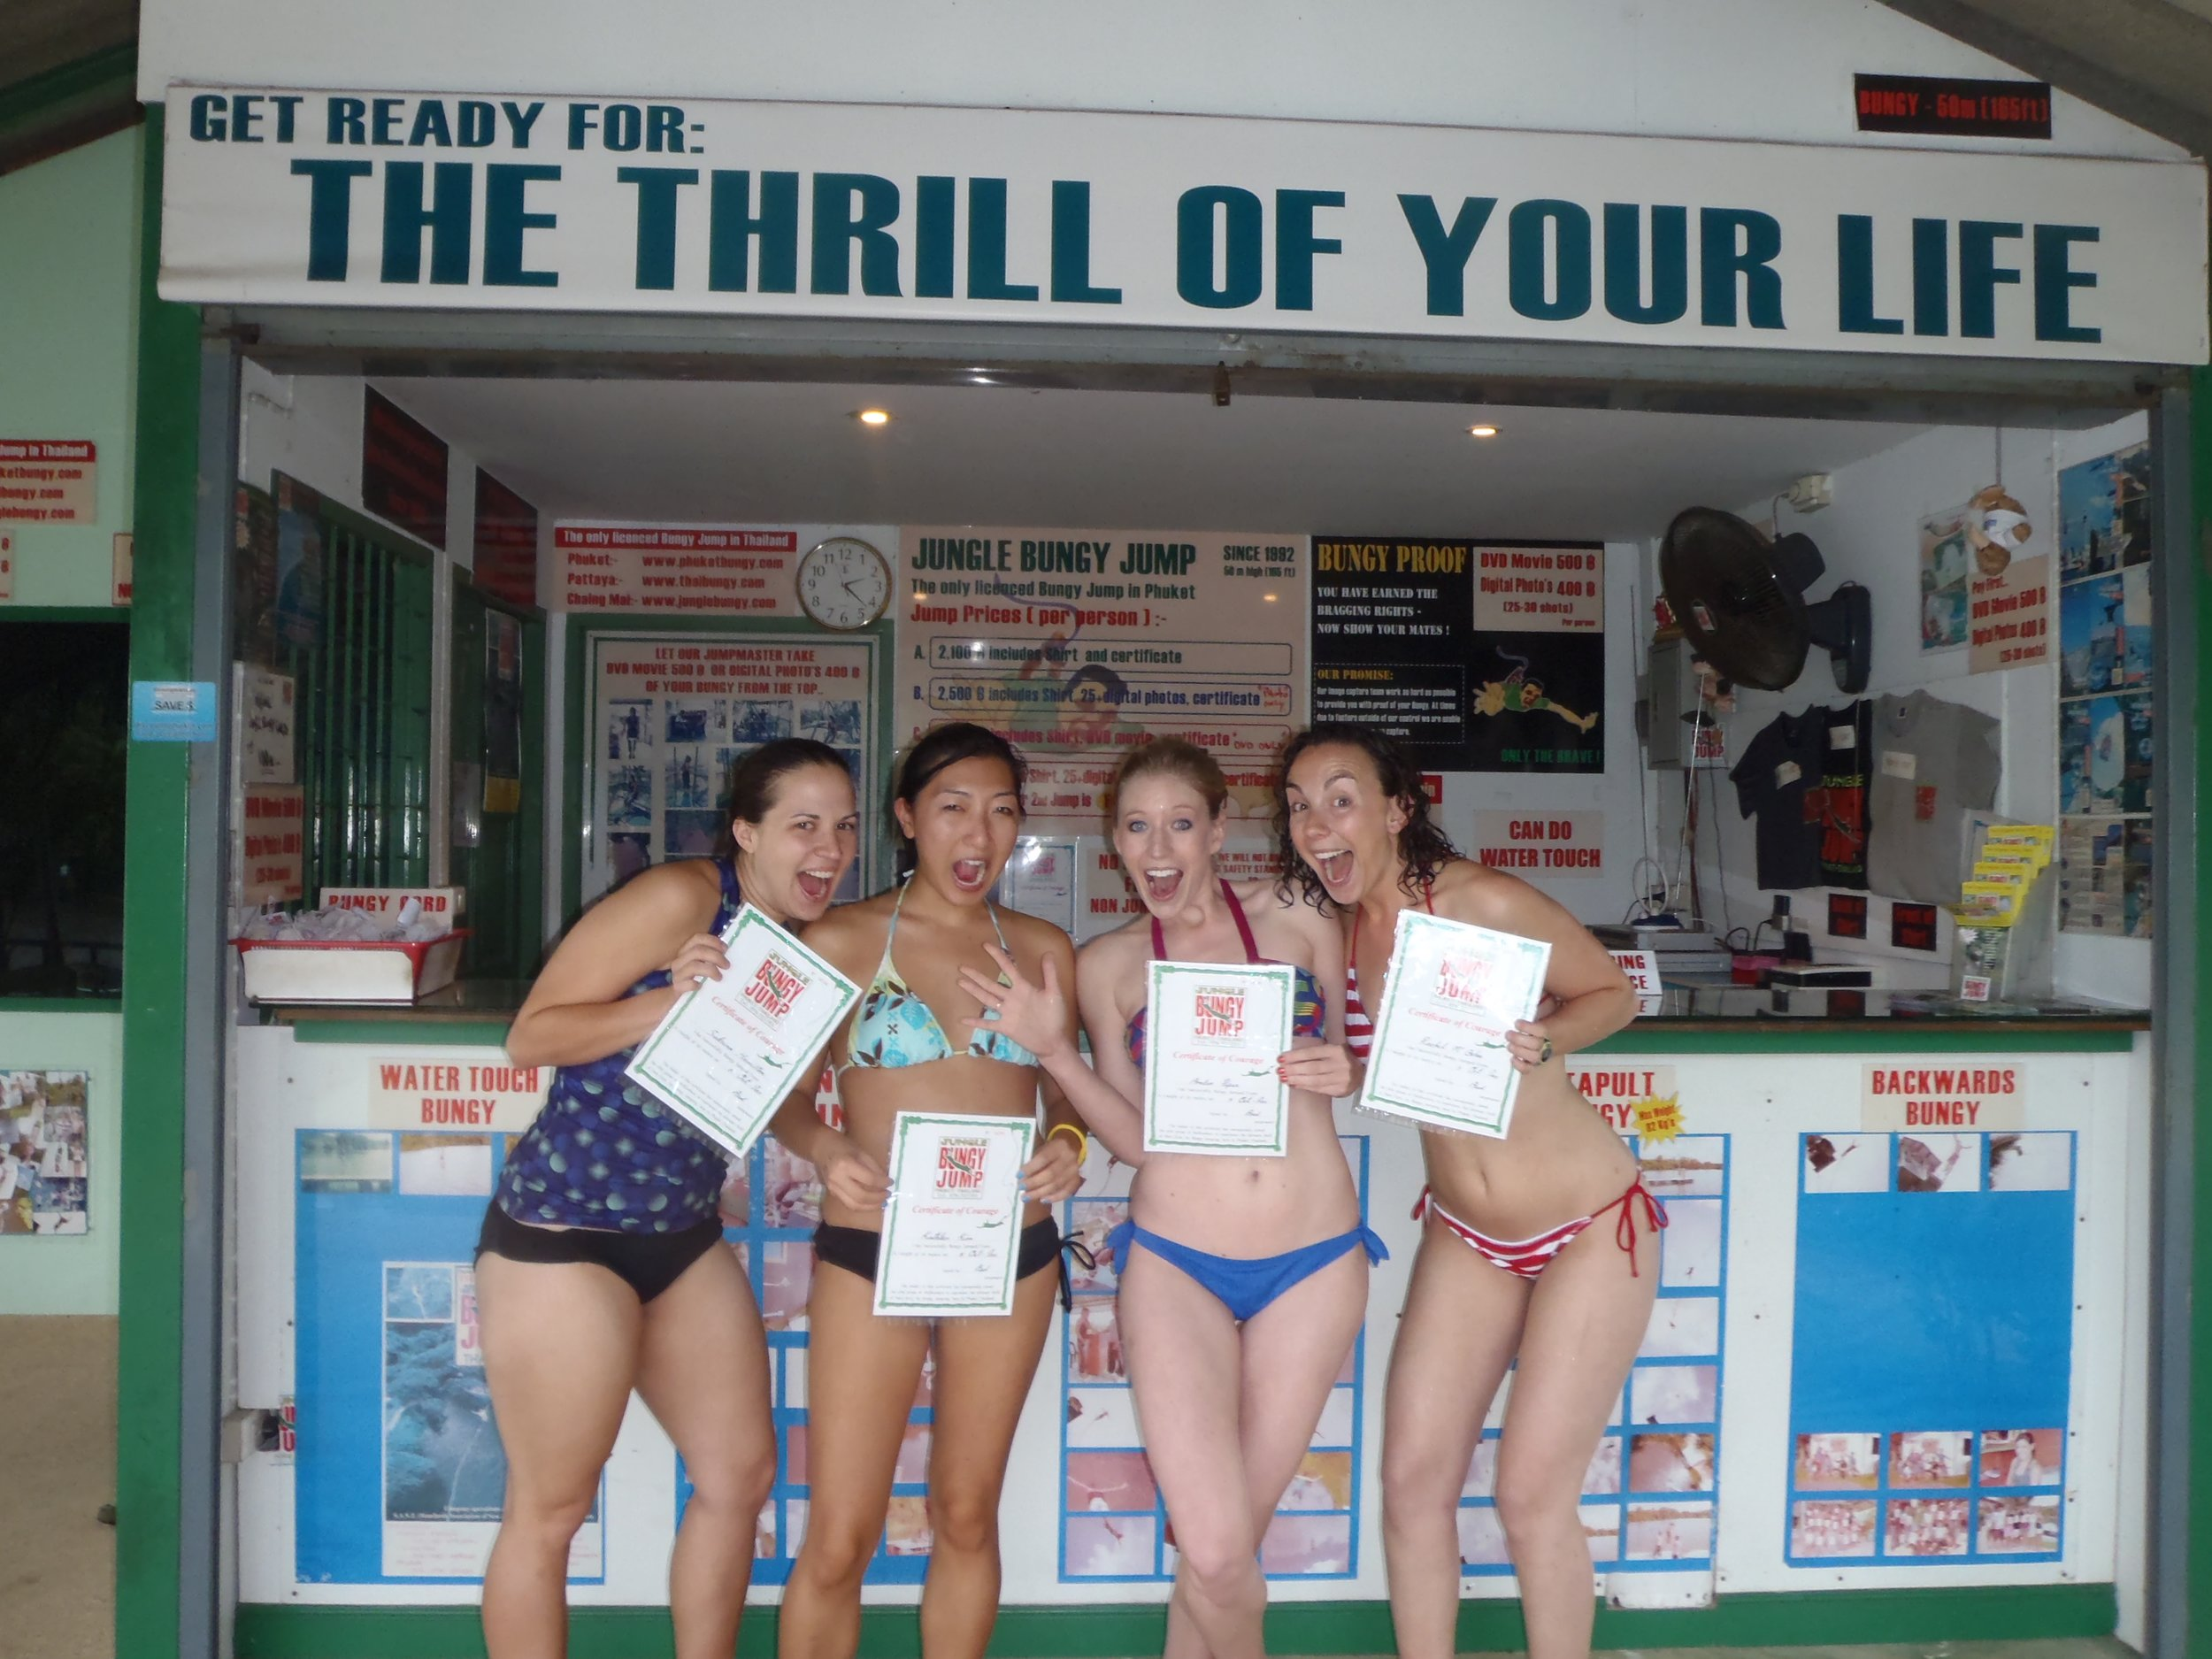 Bungy jump with your remote team and encourage healthy risk taking while having fun in Phuket Thailand!